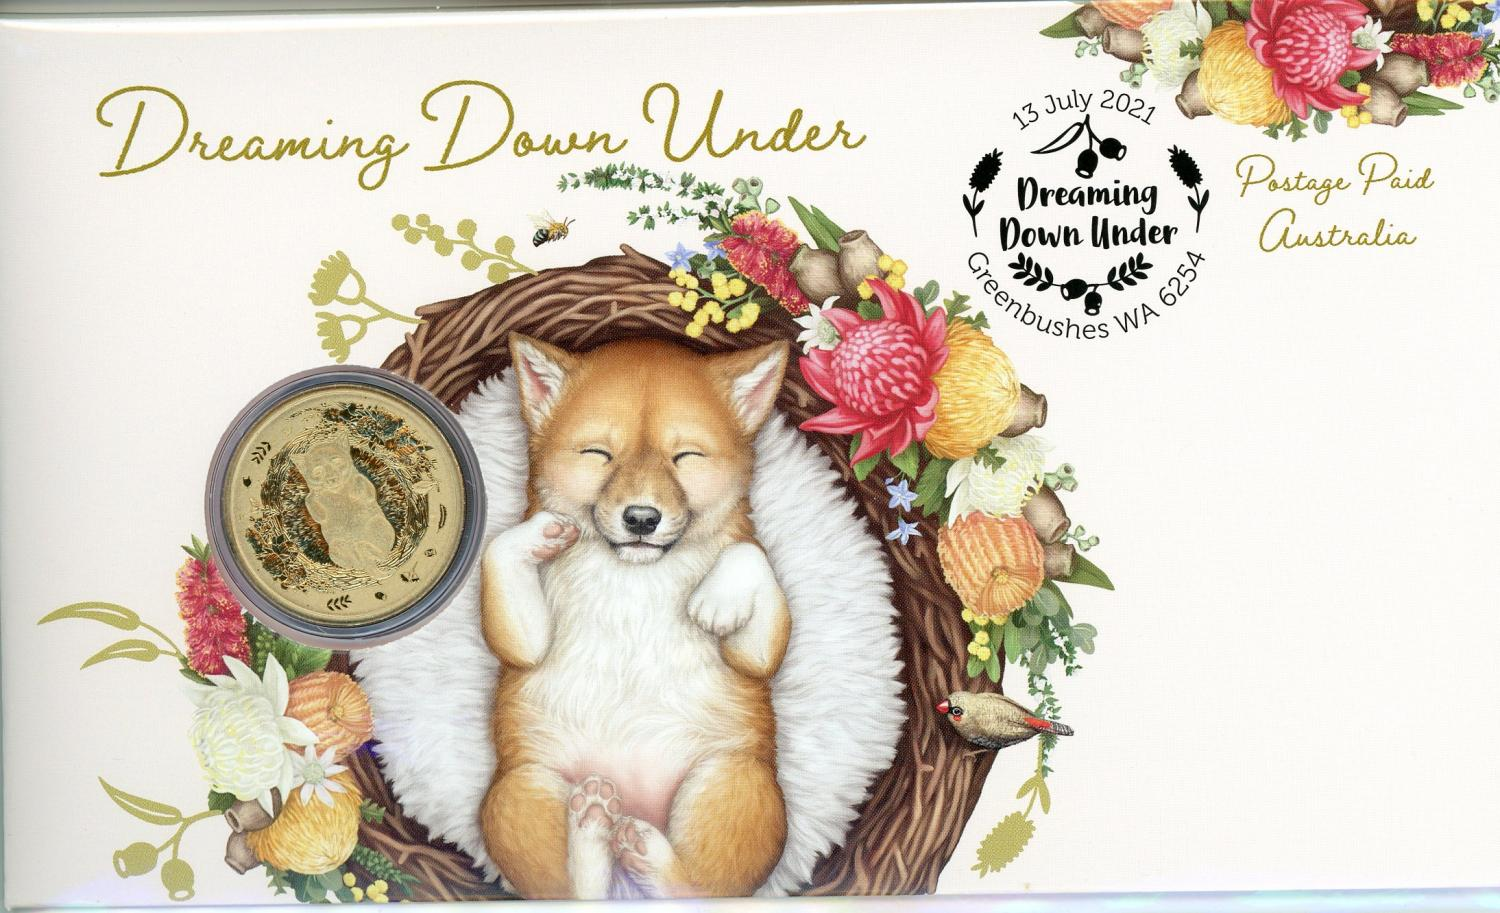 Thumbnail for 2021 Issue 30 - Dreaming Down Under - Dingo Pup PNC with Perth Mint $1 - Limited to 6,000